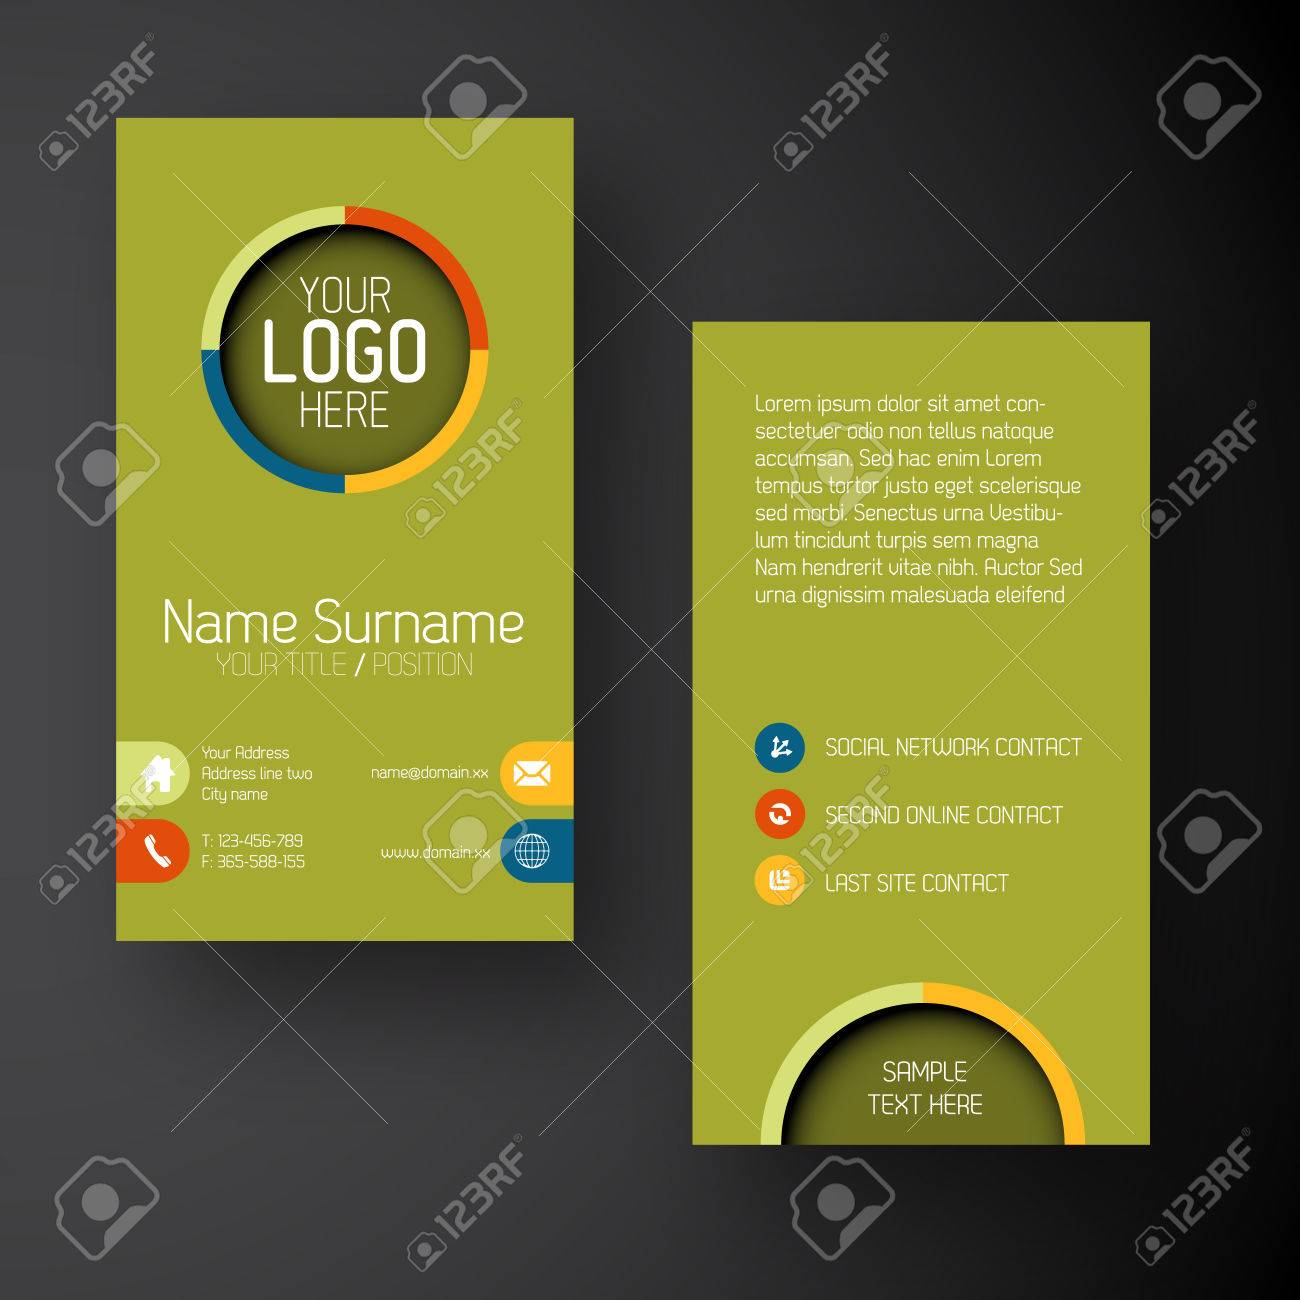 Vertical business card template image collections templates portrait business card template image collections free business modern simple green vertical business card template with magicingreecefo Image collections